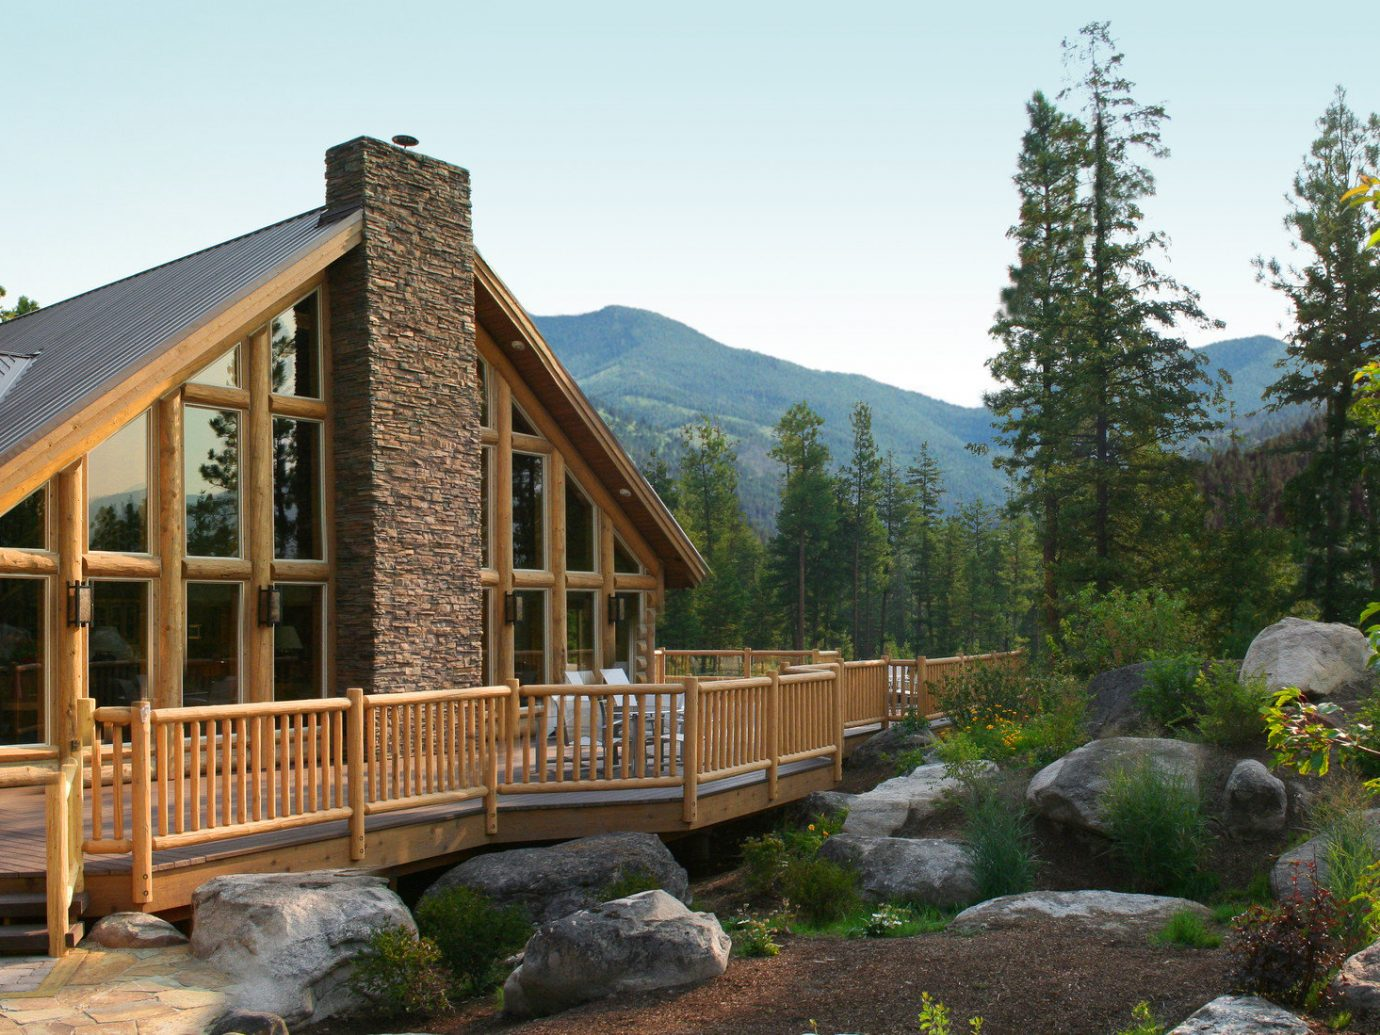 building Cabin charming cozy Exterior Glamping Hotels isolation Lodge log cabin Luxury Montana Mountains Nature Outdoors Outdoors + Adventure remote Rustic serene trees Trip Ideas wilderness sky outdoor tree house estate home cottage outdoor structure backyard Resort stone